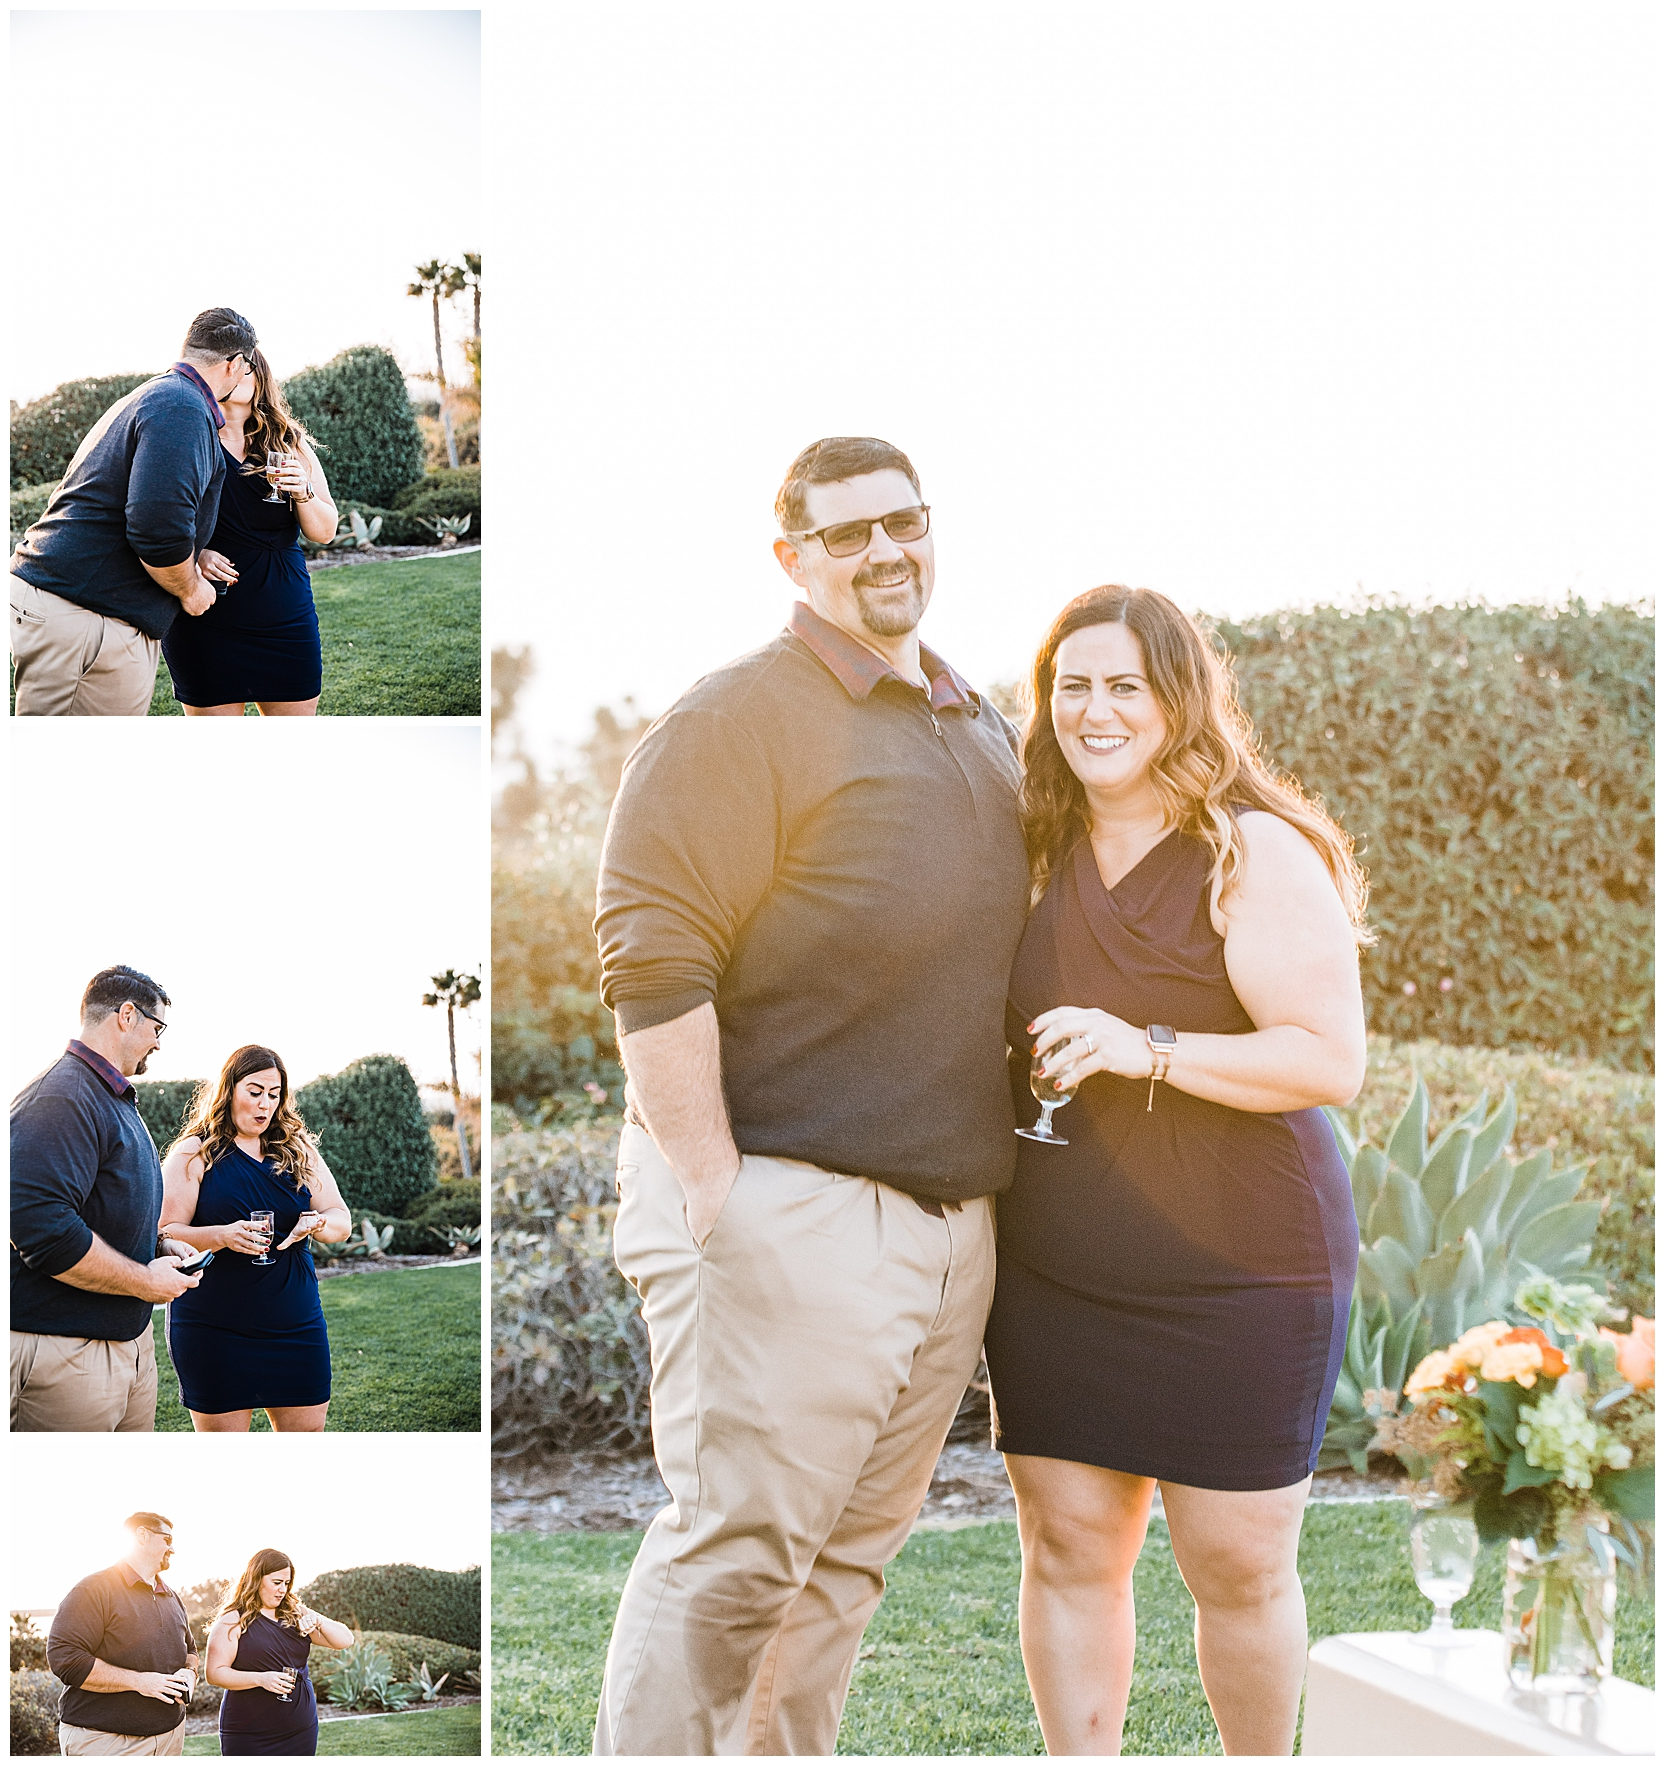 jessicafredericks_huntingtonbeach_proposal_sunset_engagement_0020.jpg